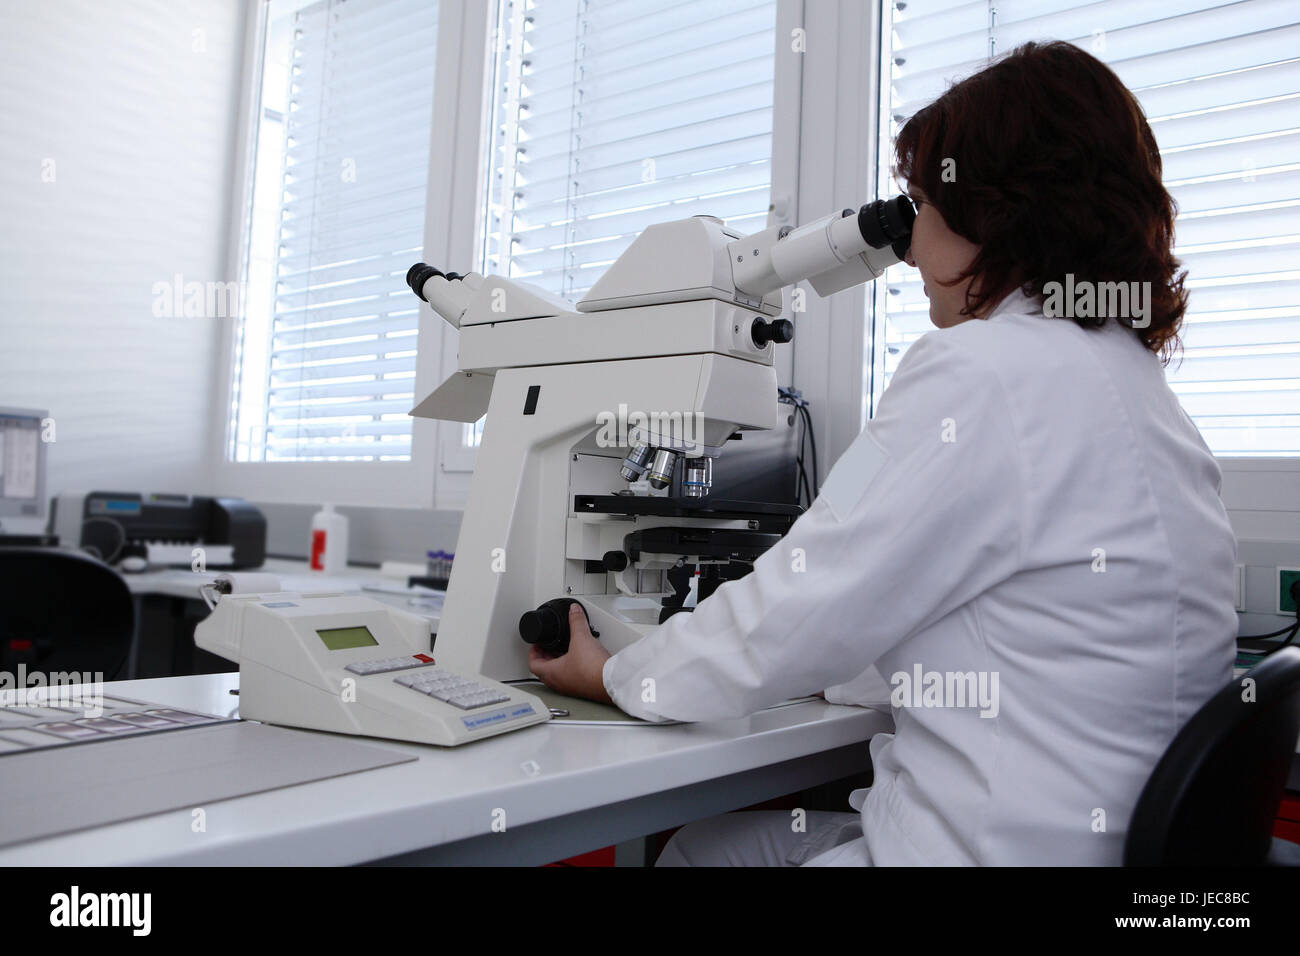 Laboratory assistant, microscope, medicine, research, science, hospital, laboratory, person, laboratory office worker, Stock Photo